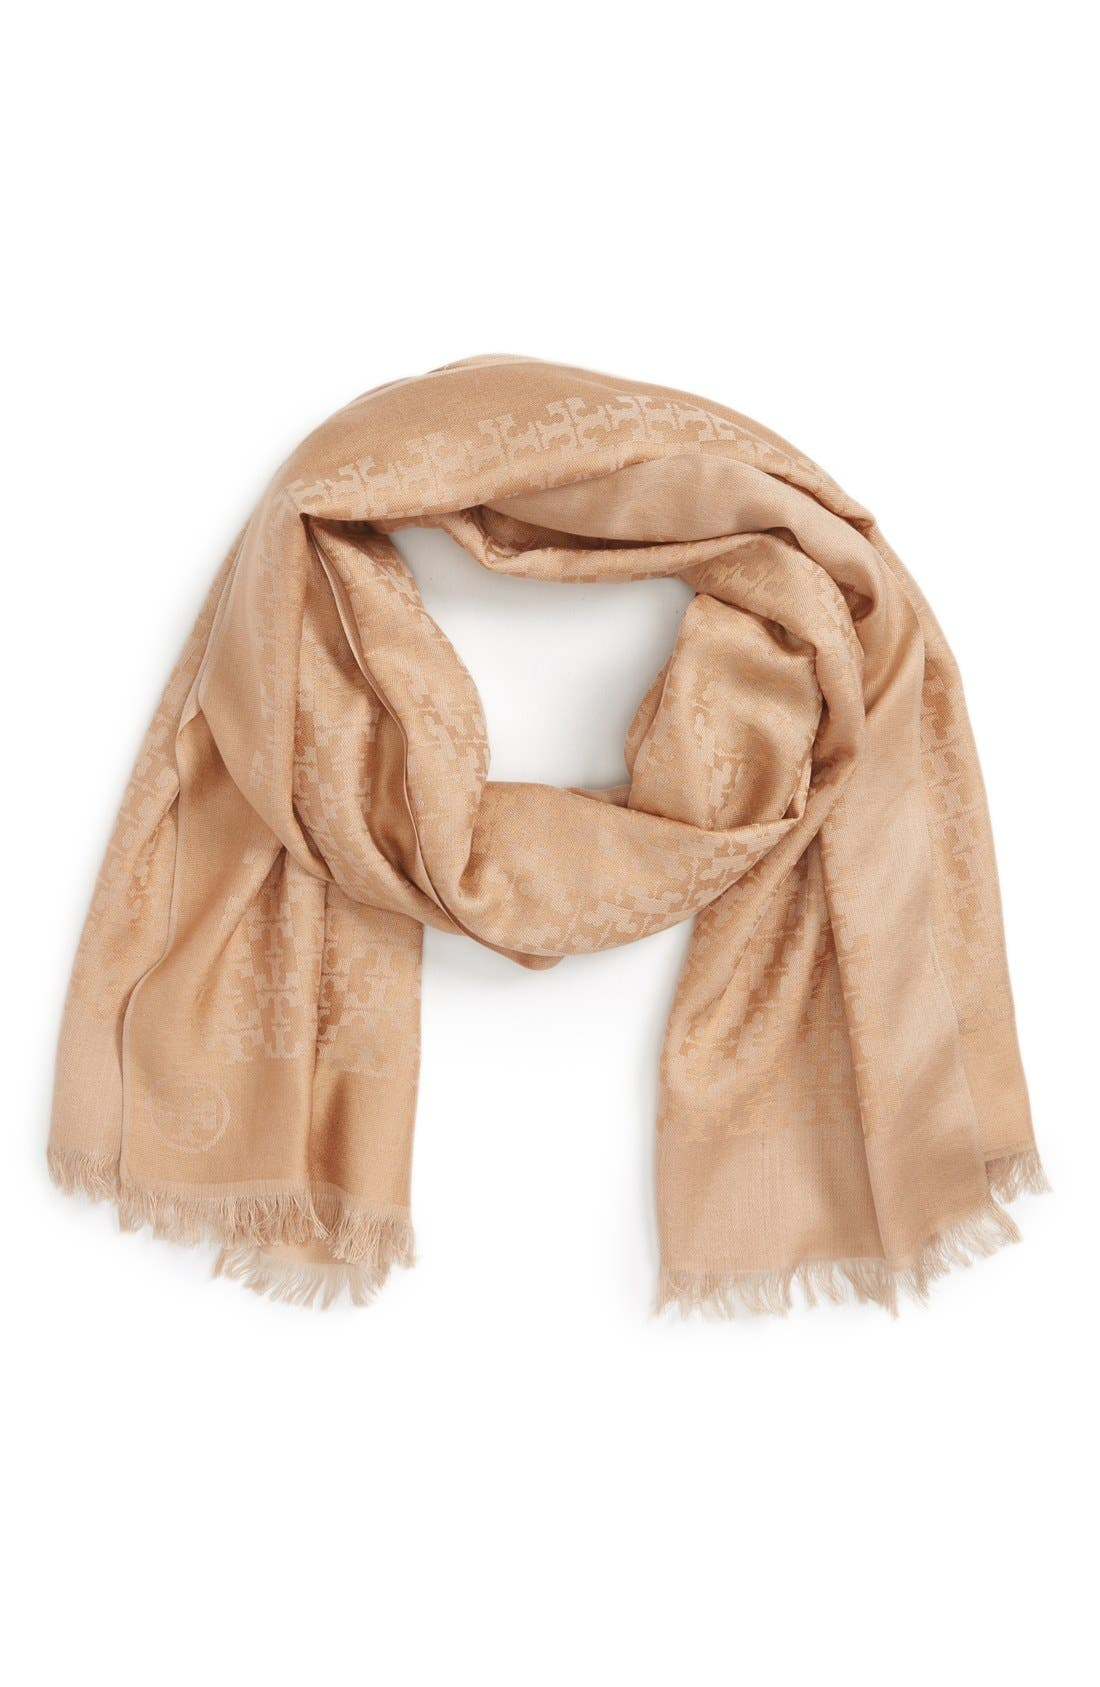 Alternate Image 1 Selected - Tory Burch 'All-Over T' Silk & Cotton Jacquard Scarf